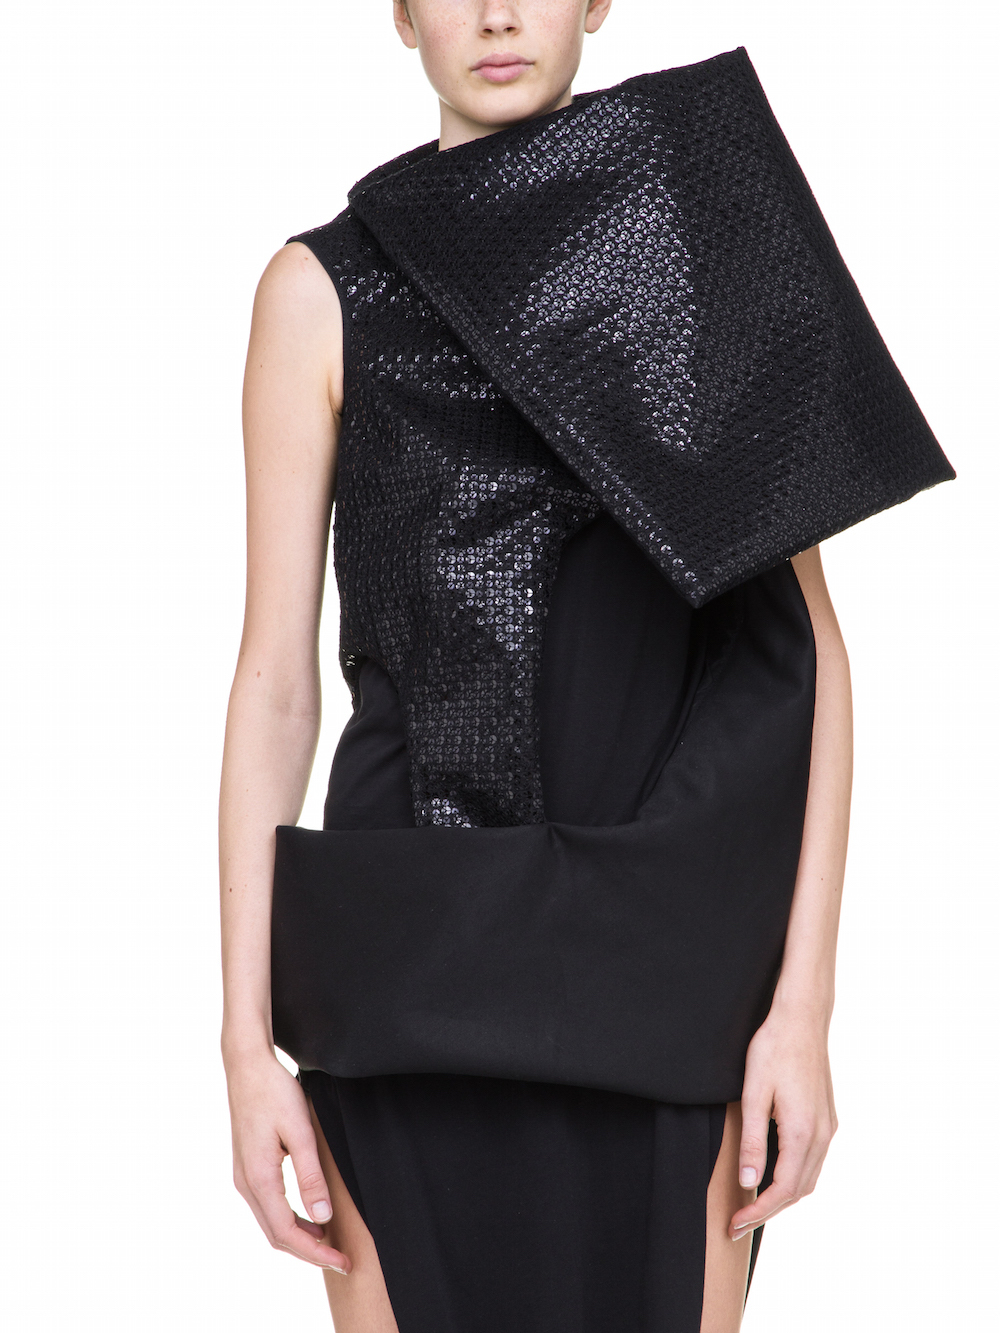 RICK OWENS PSILOCYBIN TUNIC IN BLACK WITH BLACK SEQUIN DETAILS